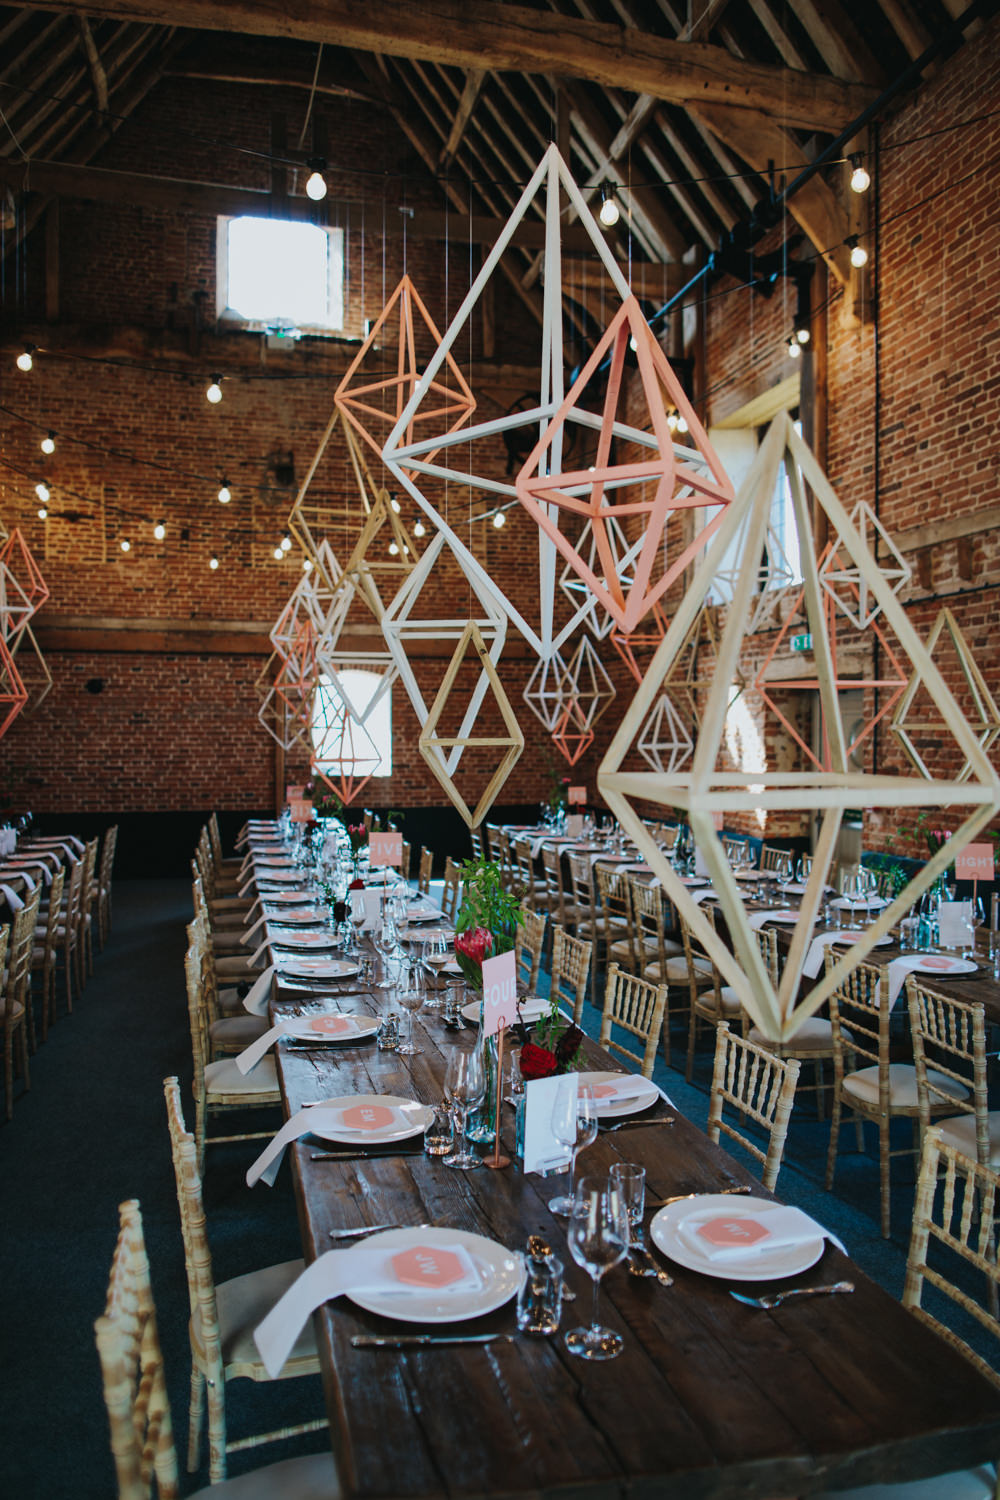 Himmeli Geometric Shapes Hanging Decor Installation Decoration Godwick Great Barn Wedding Joshua Patrick Photography